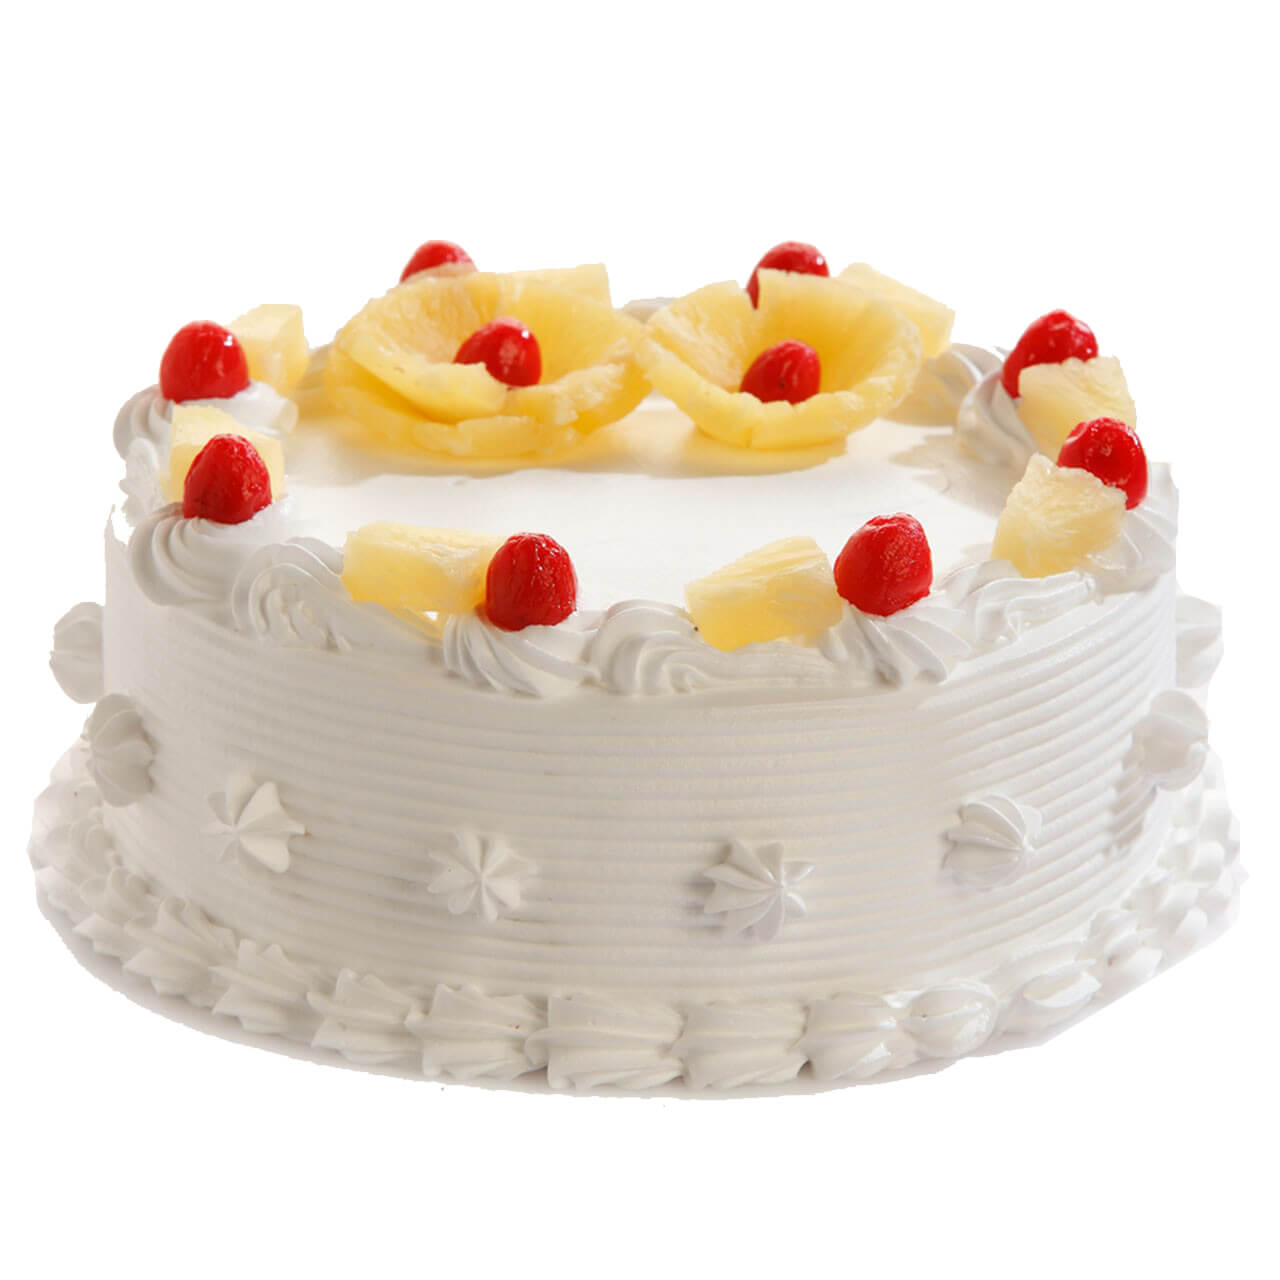 Cake Designs Half Kg : Order Send Midnight Online Pineapple Cake Half Kg Any ...